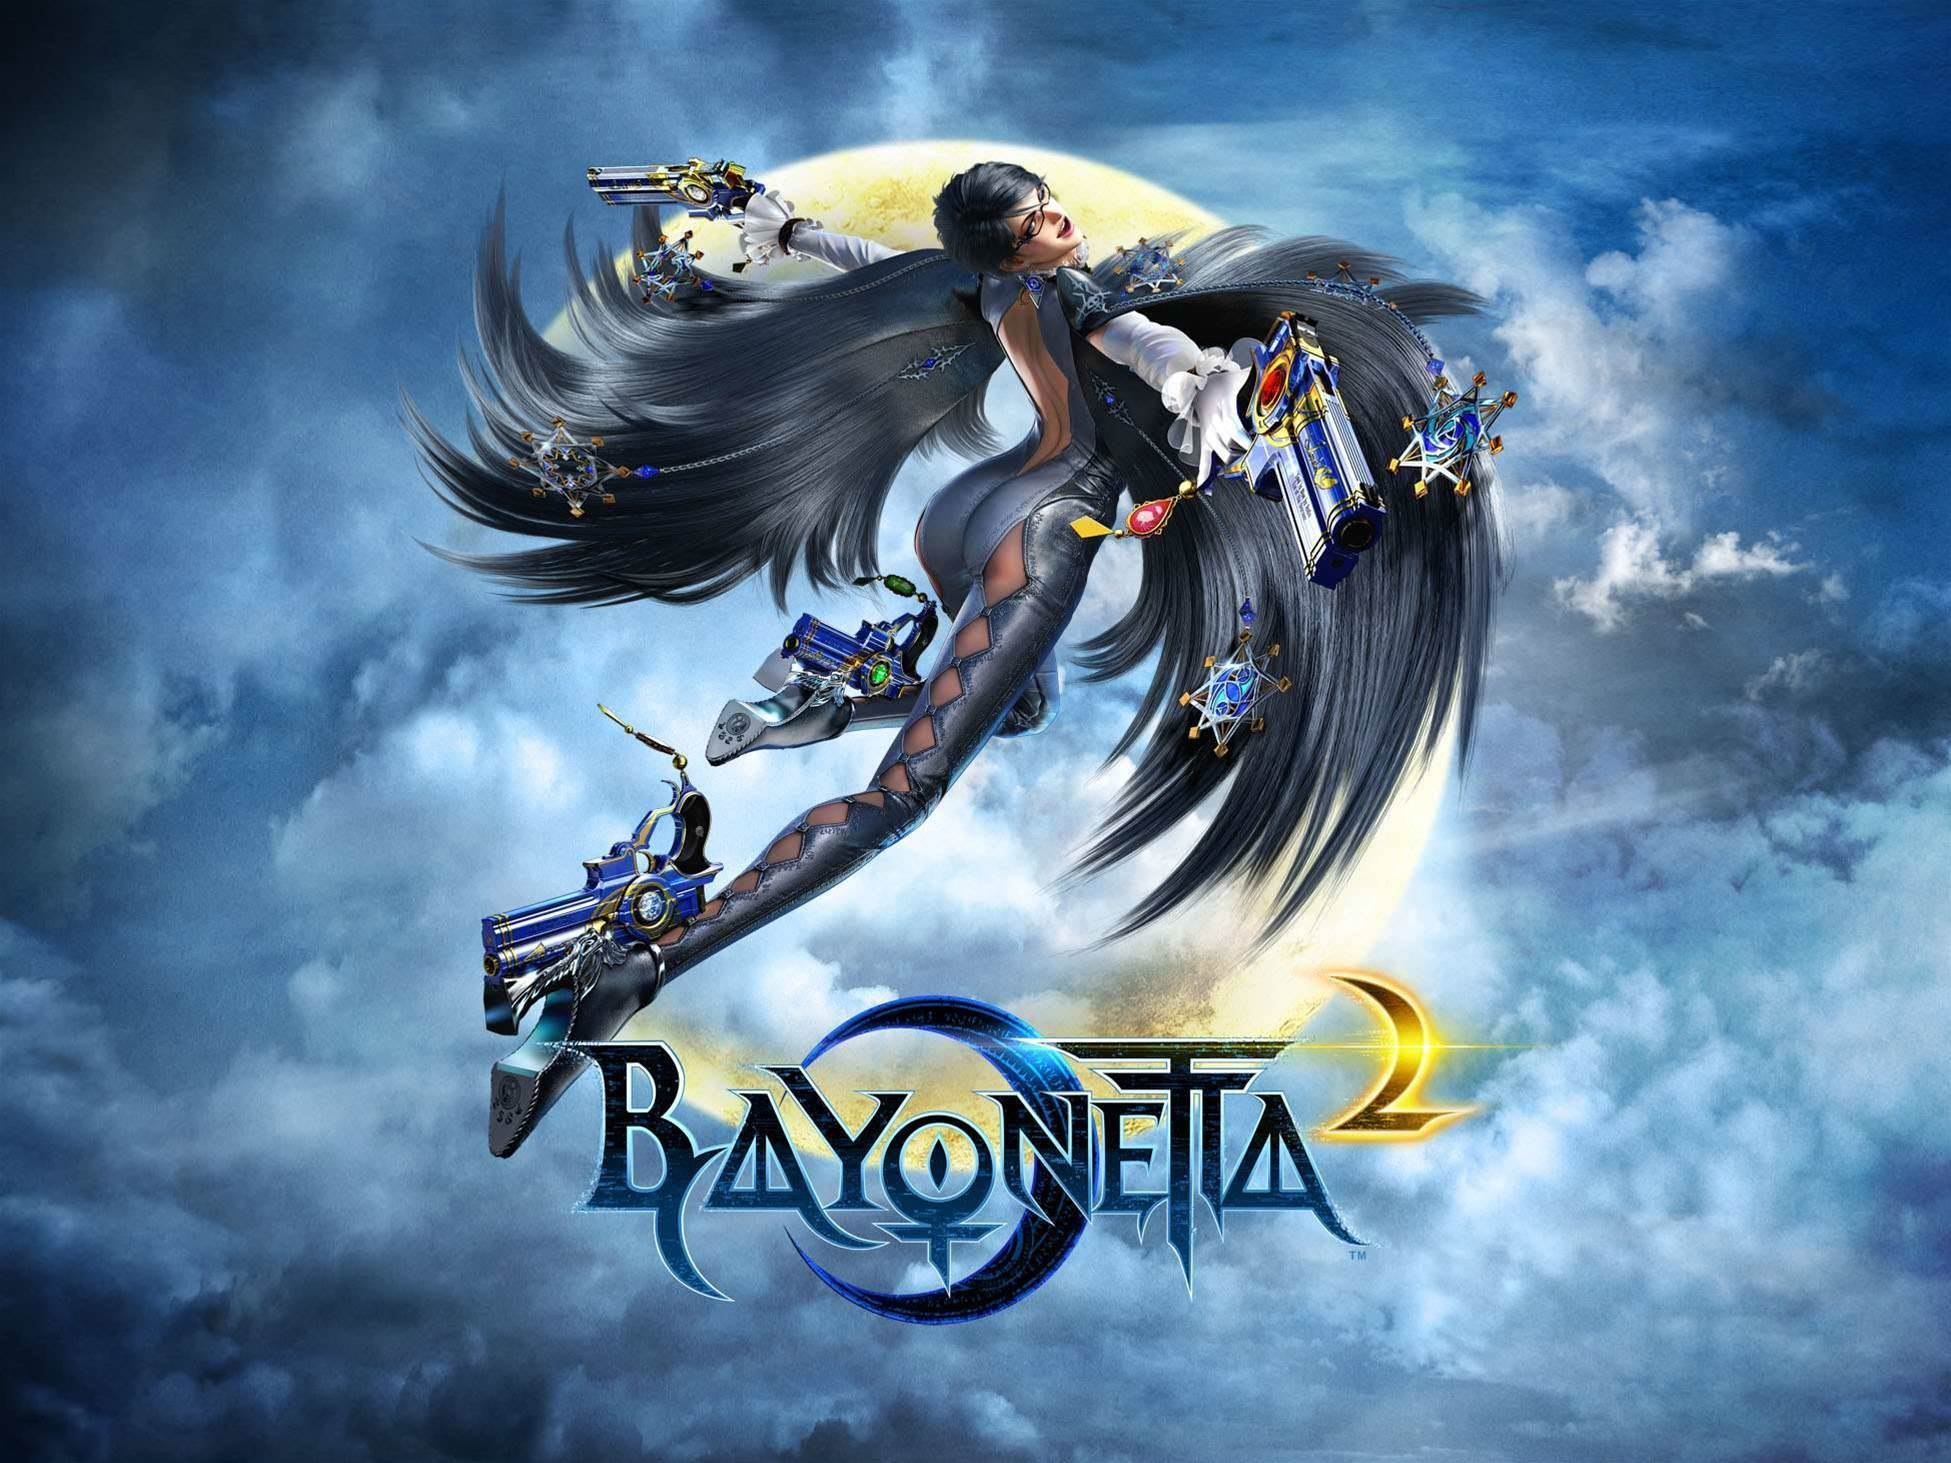 Bayonetta 2 demo out now